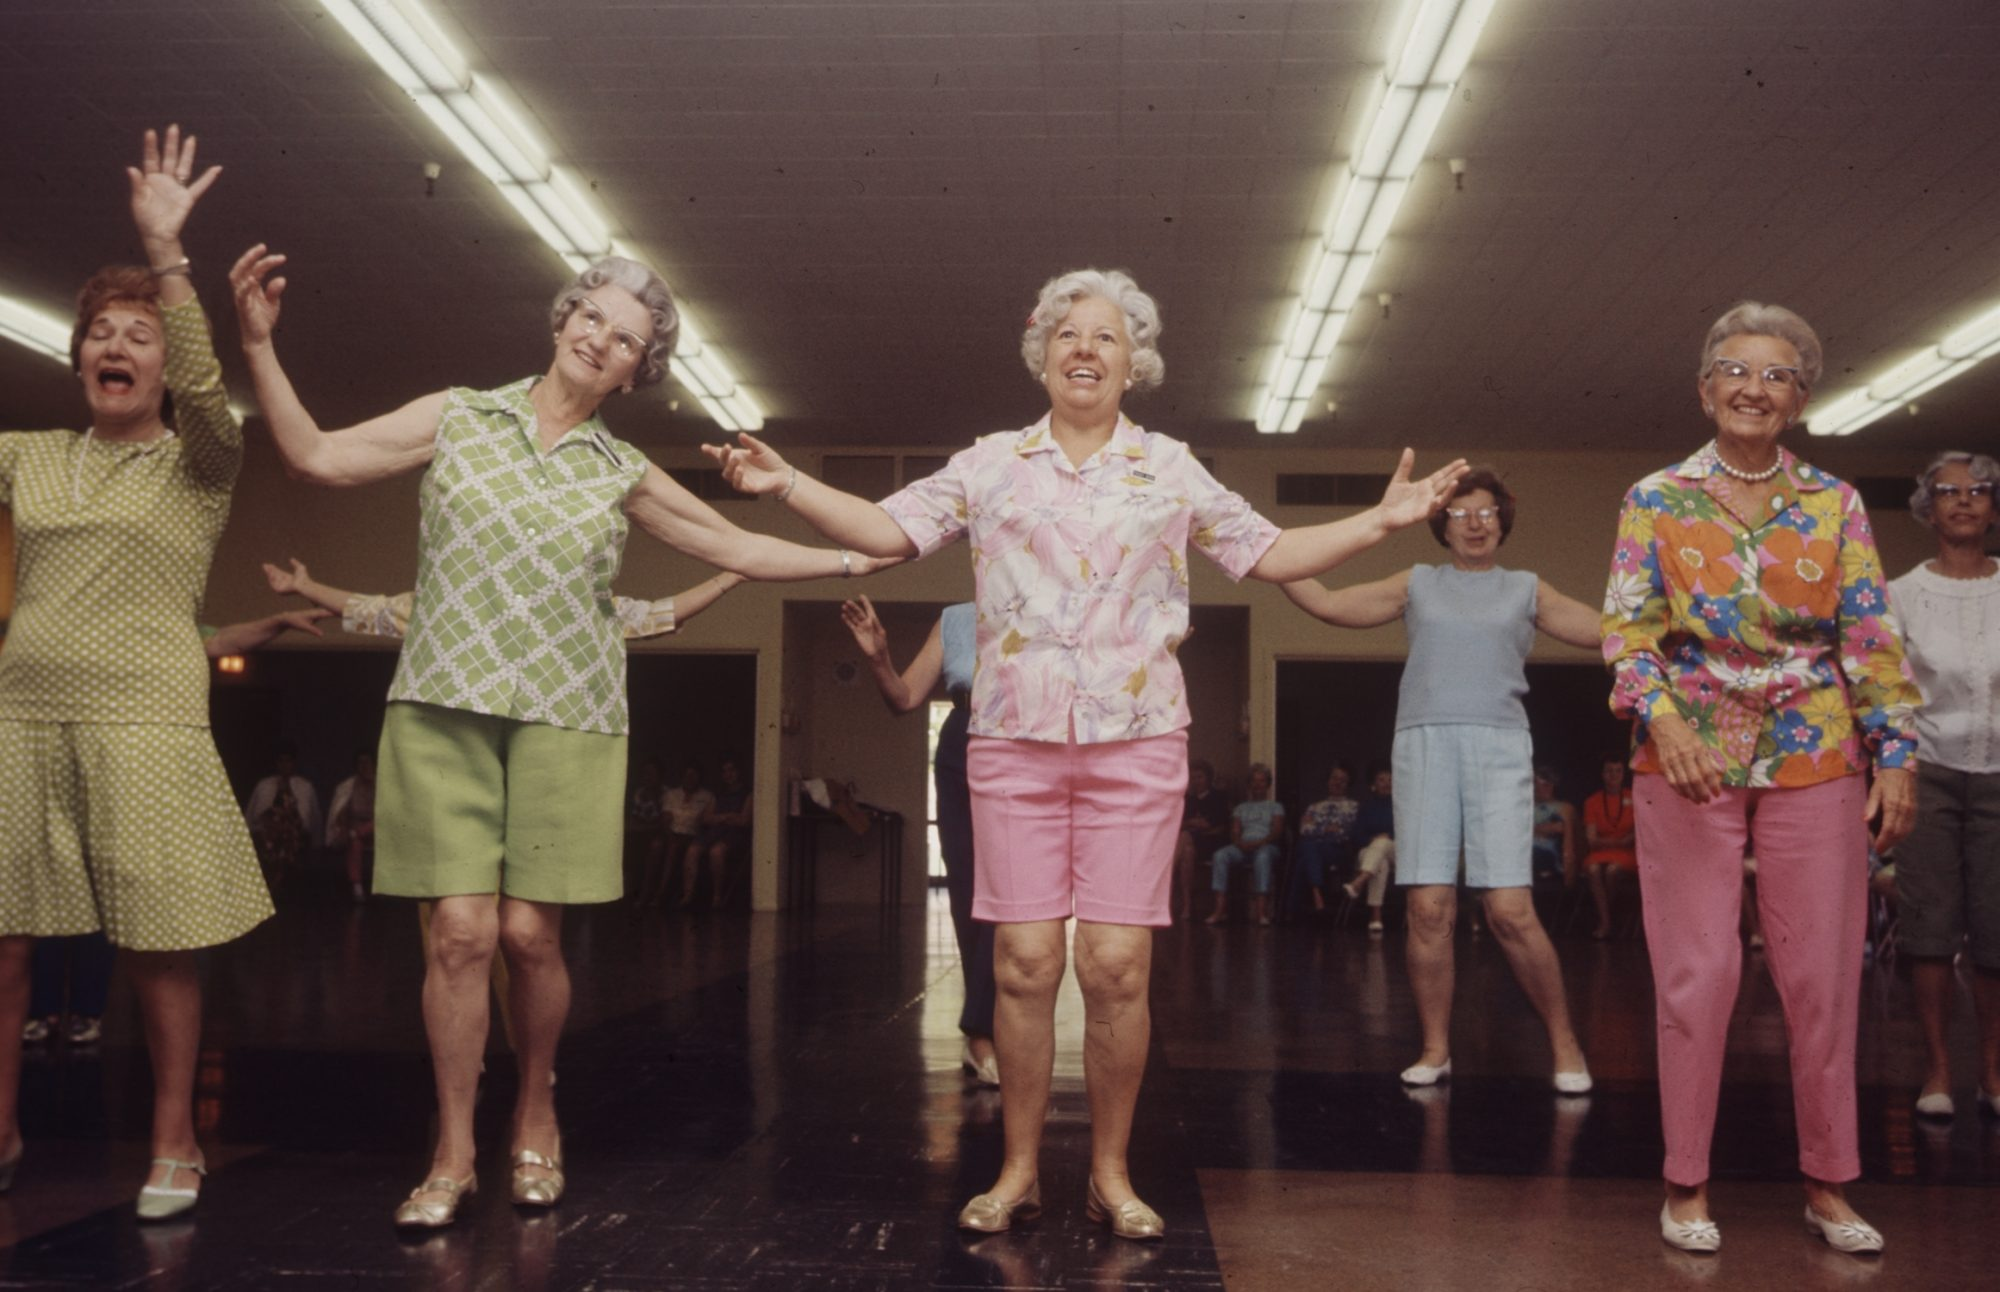 Dancing Older Women in 1970